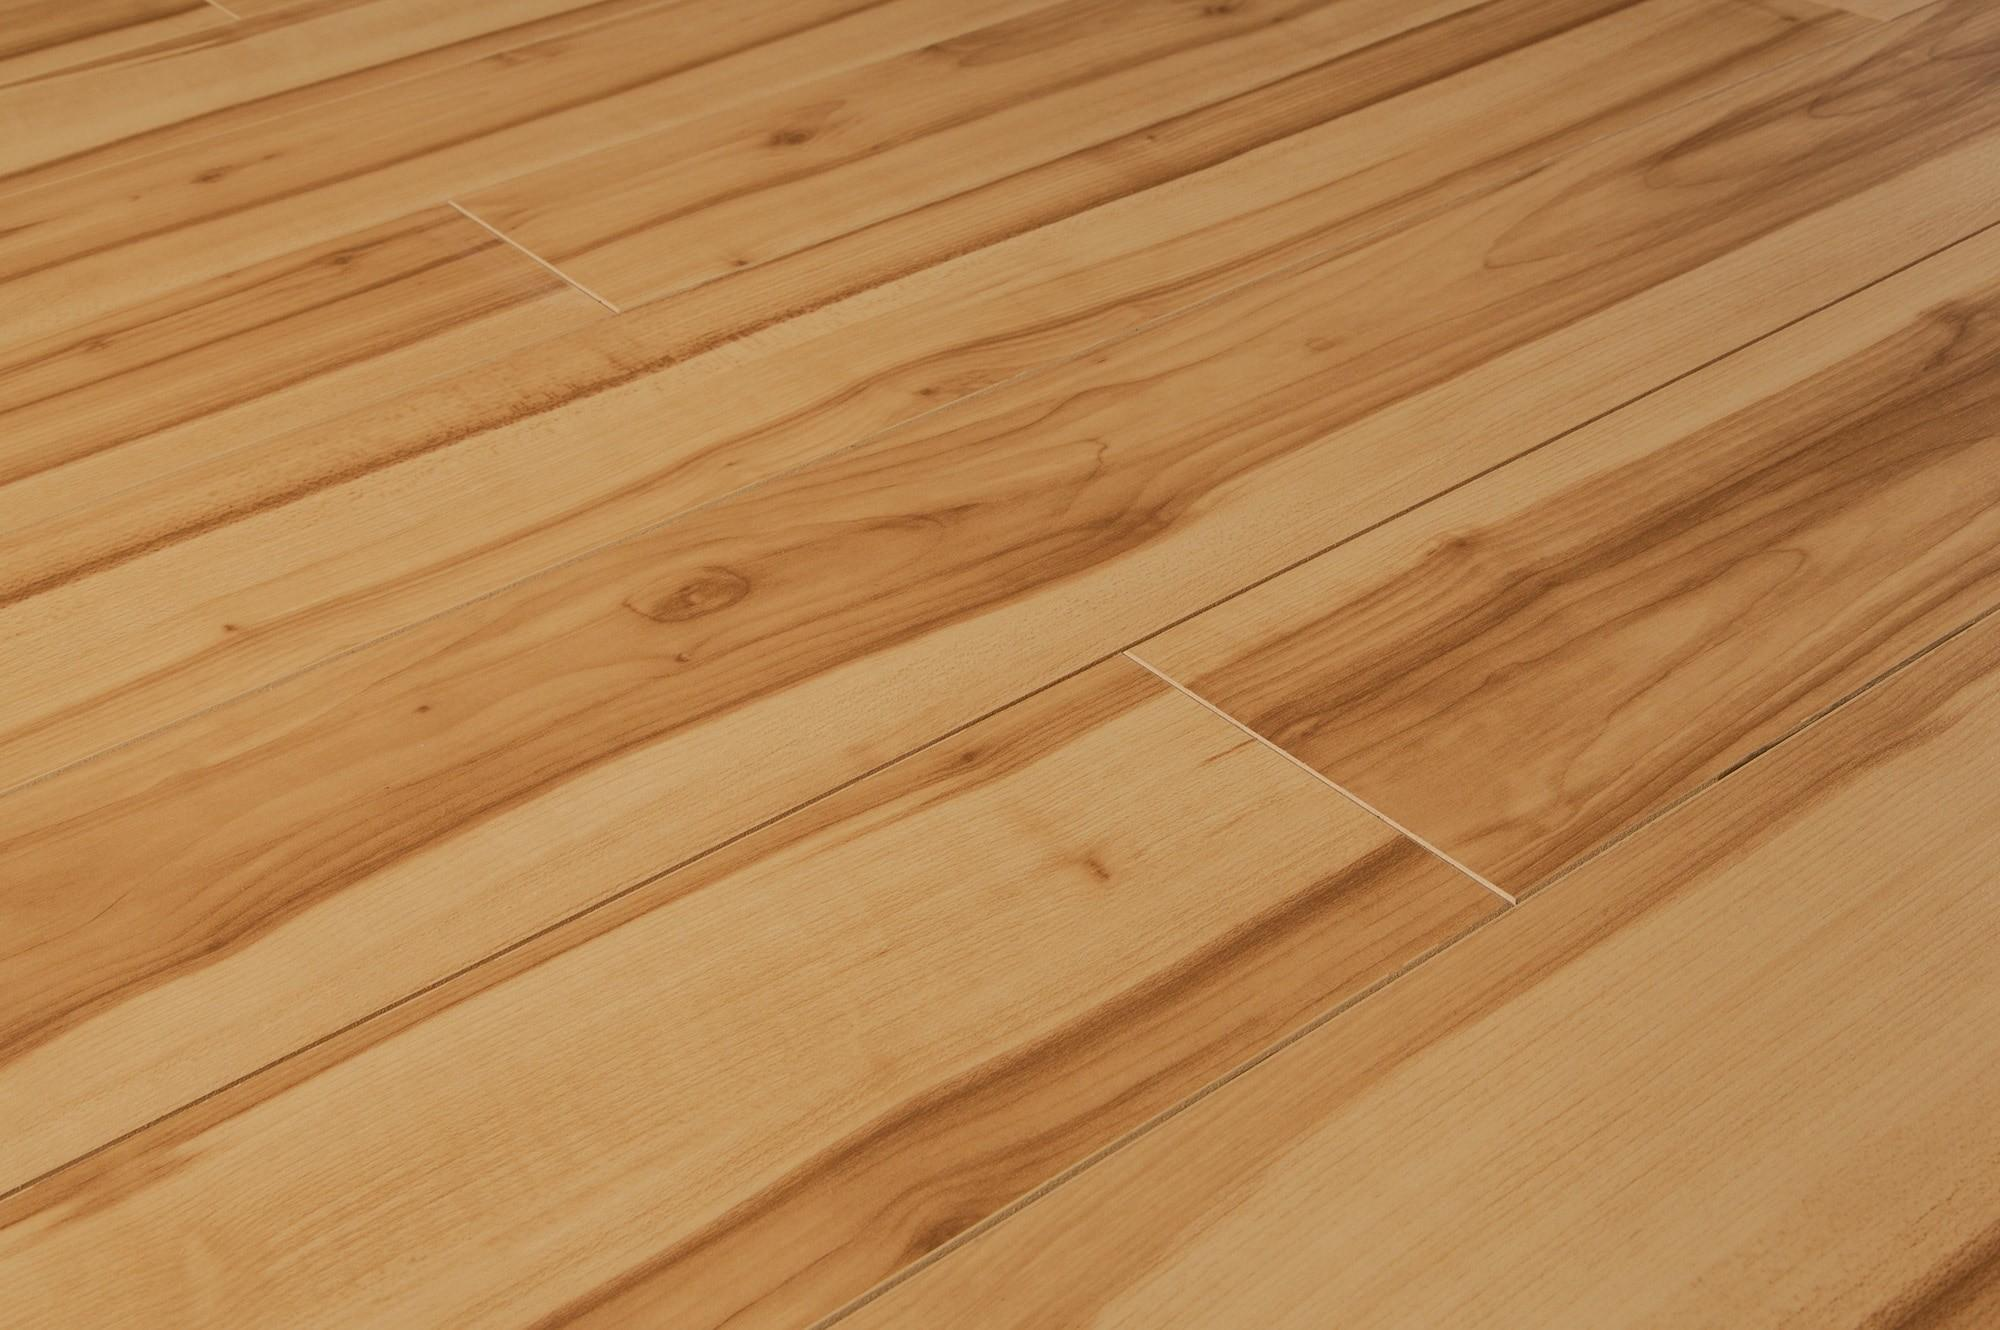 Cleaning Laminate Floors Capecaves